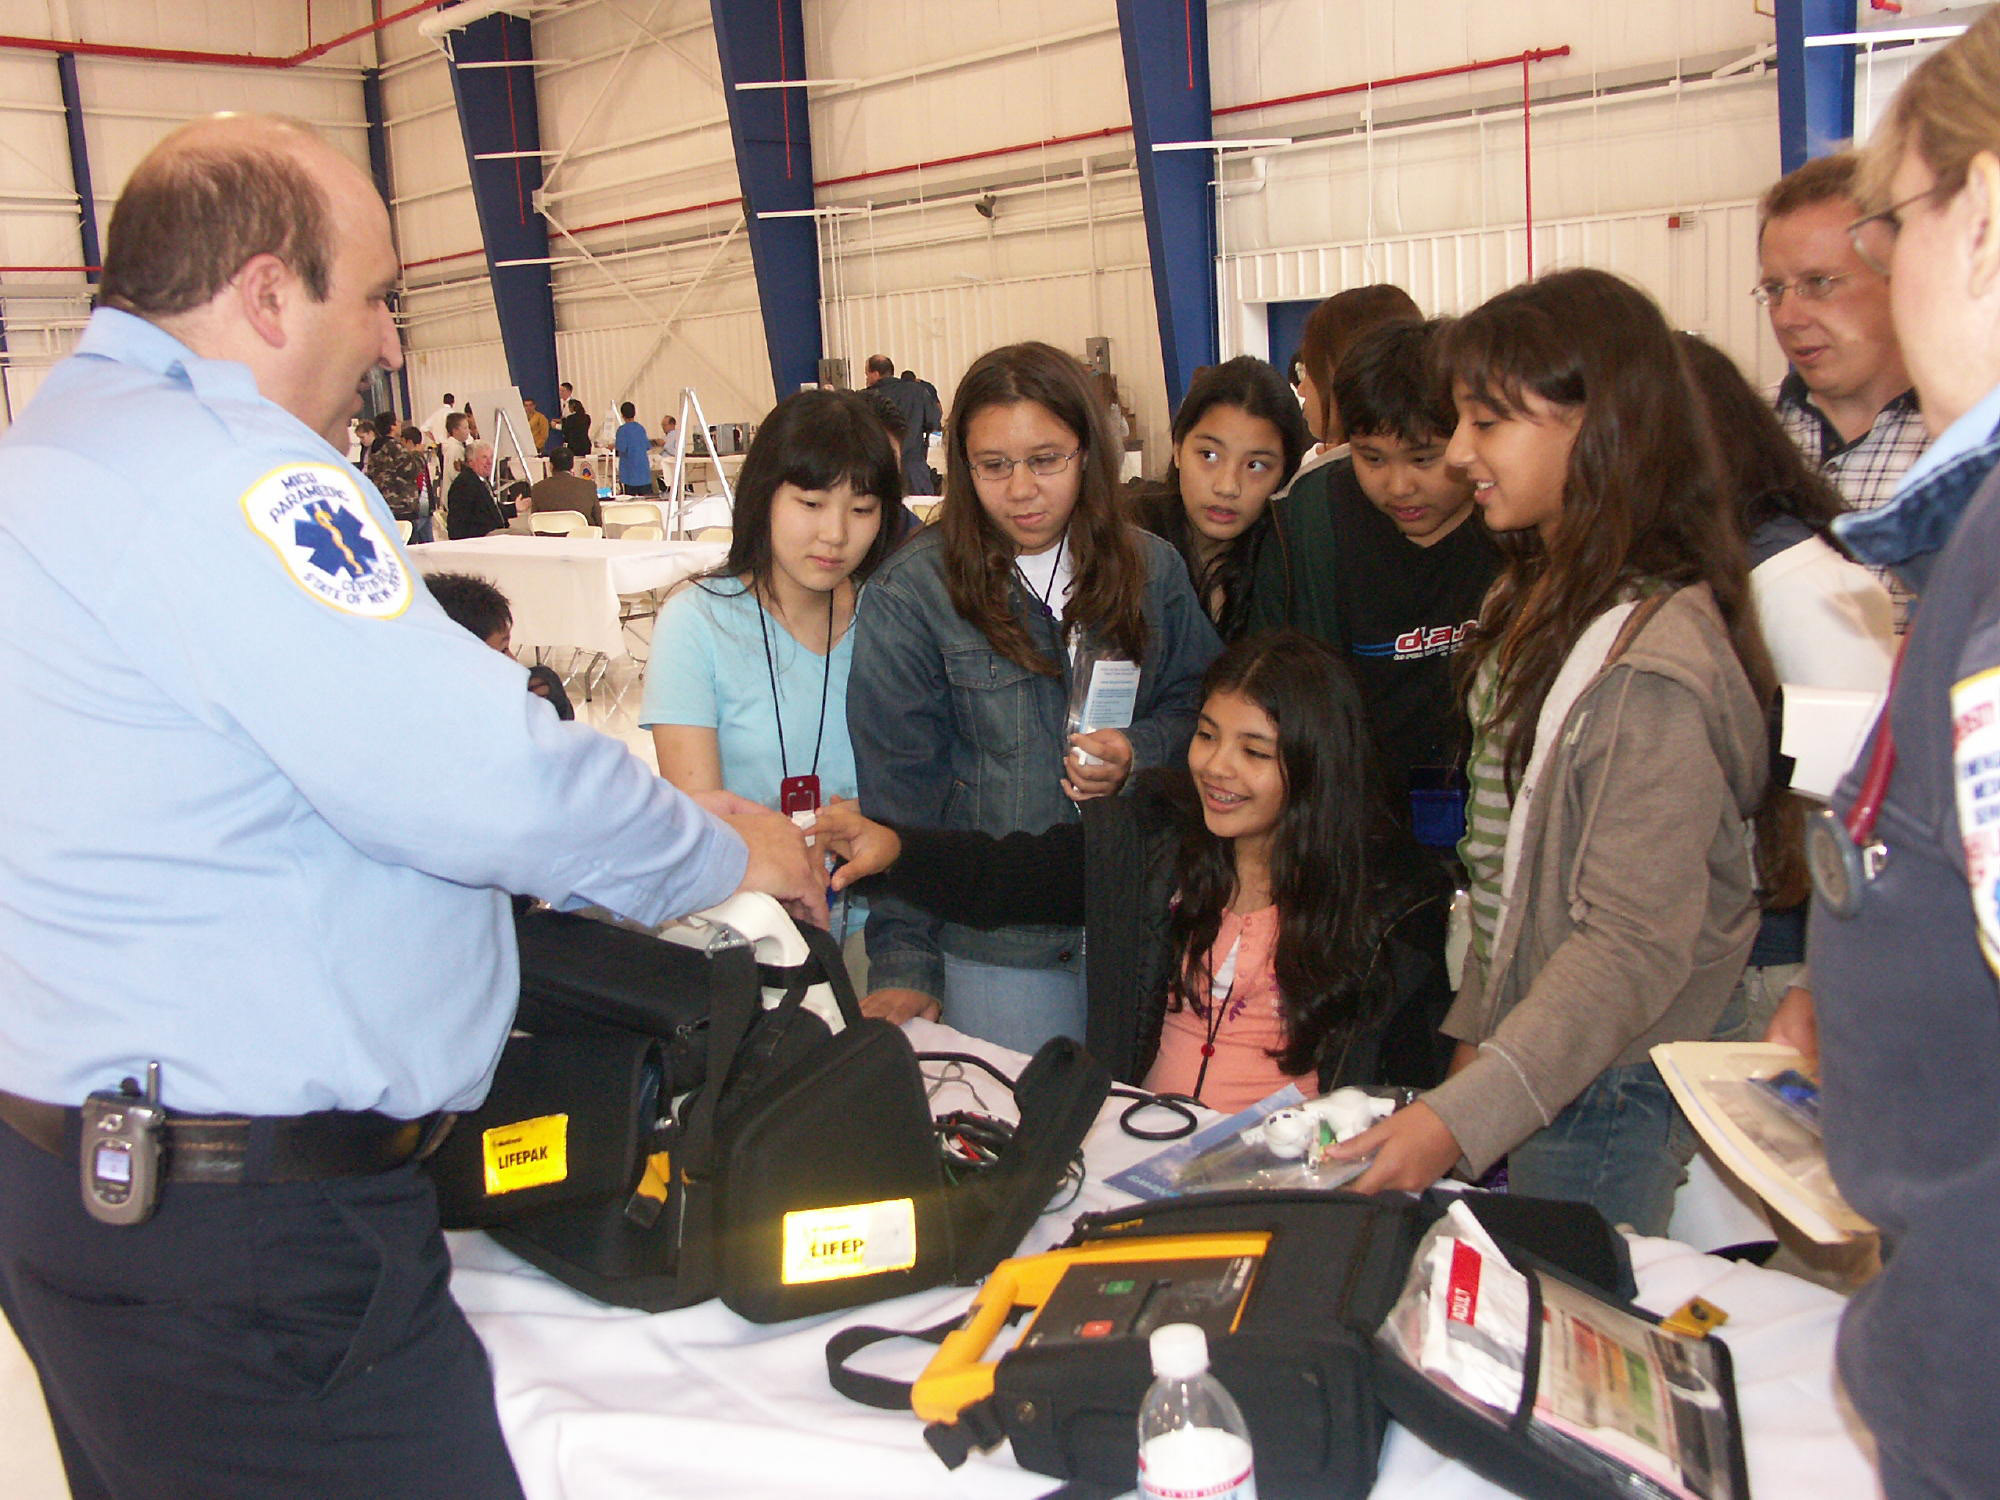 Teterboro Airport Hosts First Aviation Career Expo